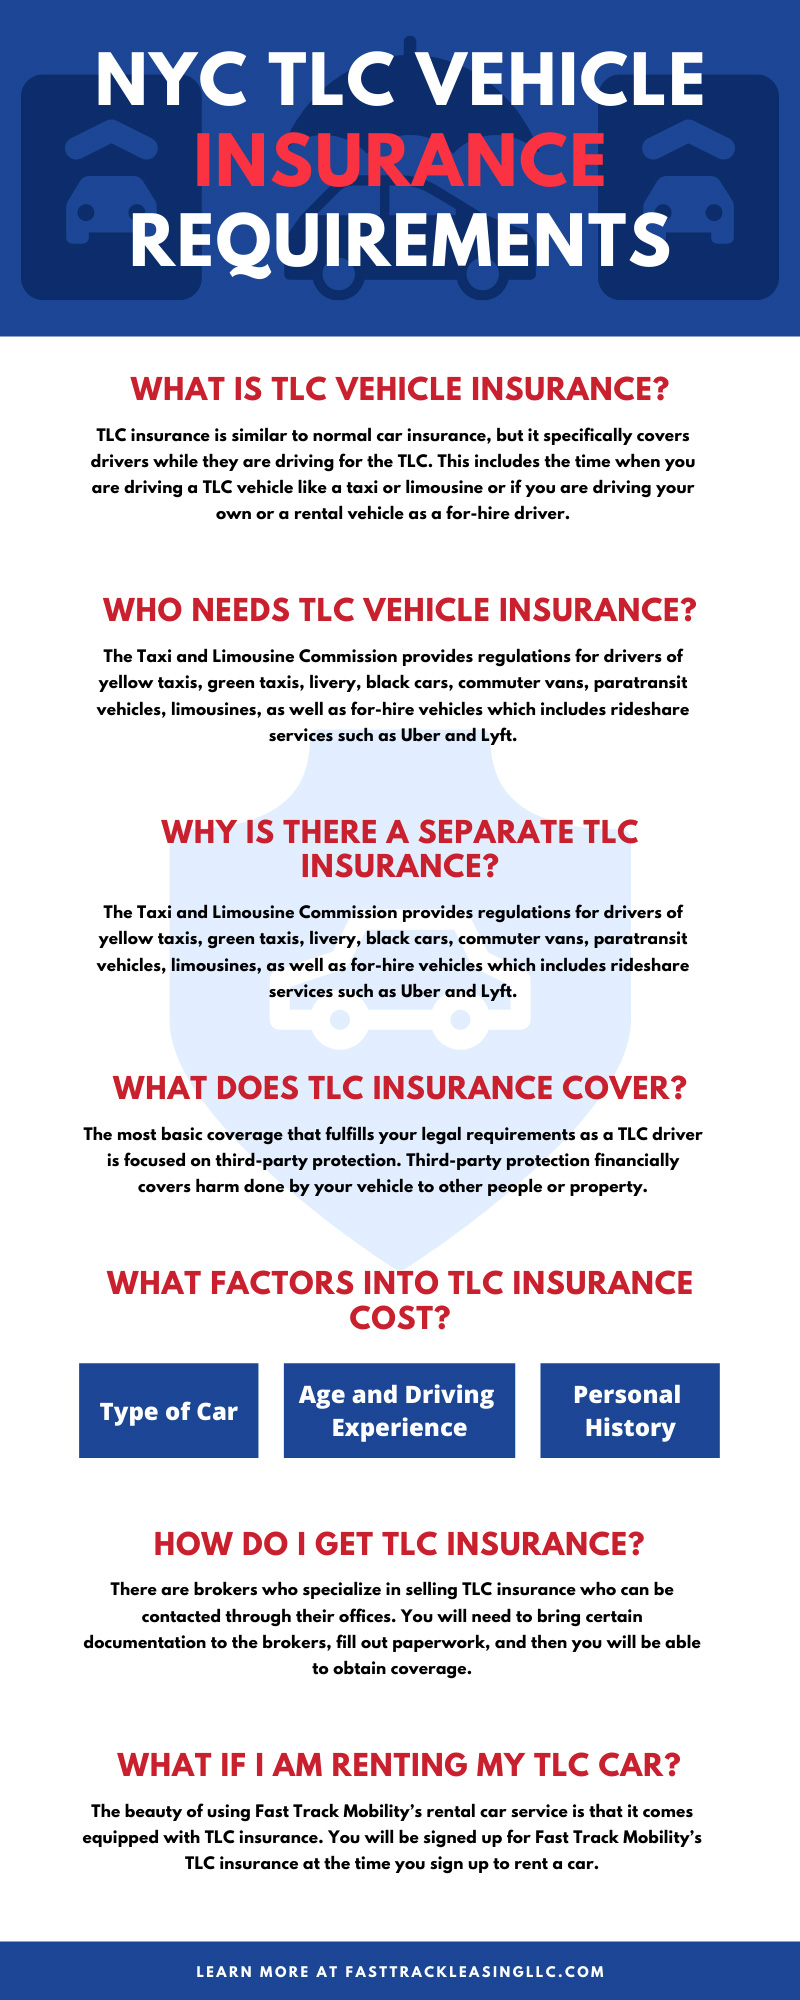 NYC TLC Vehicle Insurance Requirements